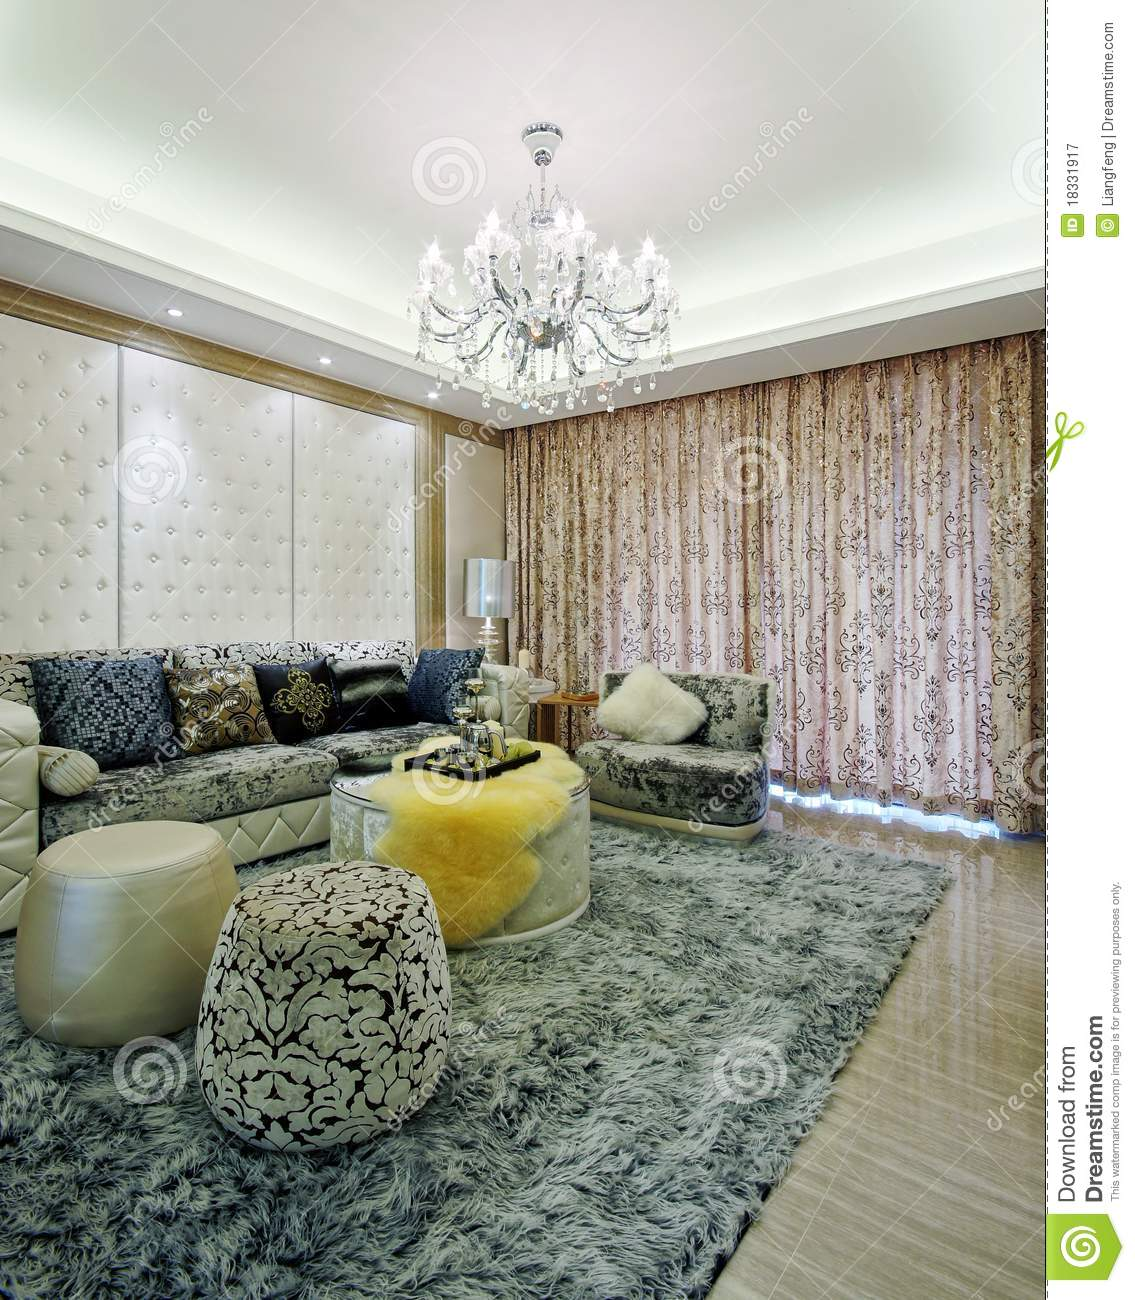 Beautiful room decoration royalty free stock photography for Beautiful room decoration